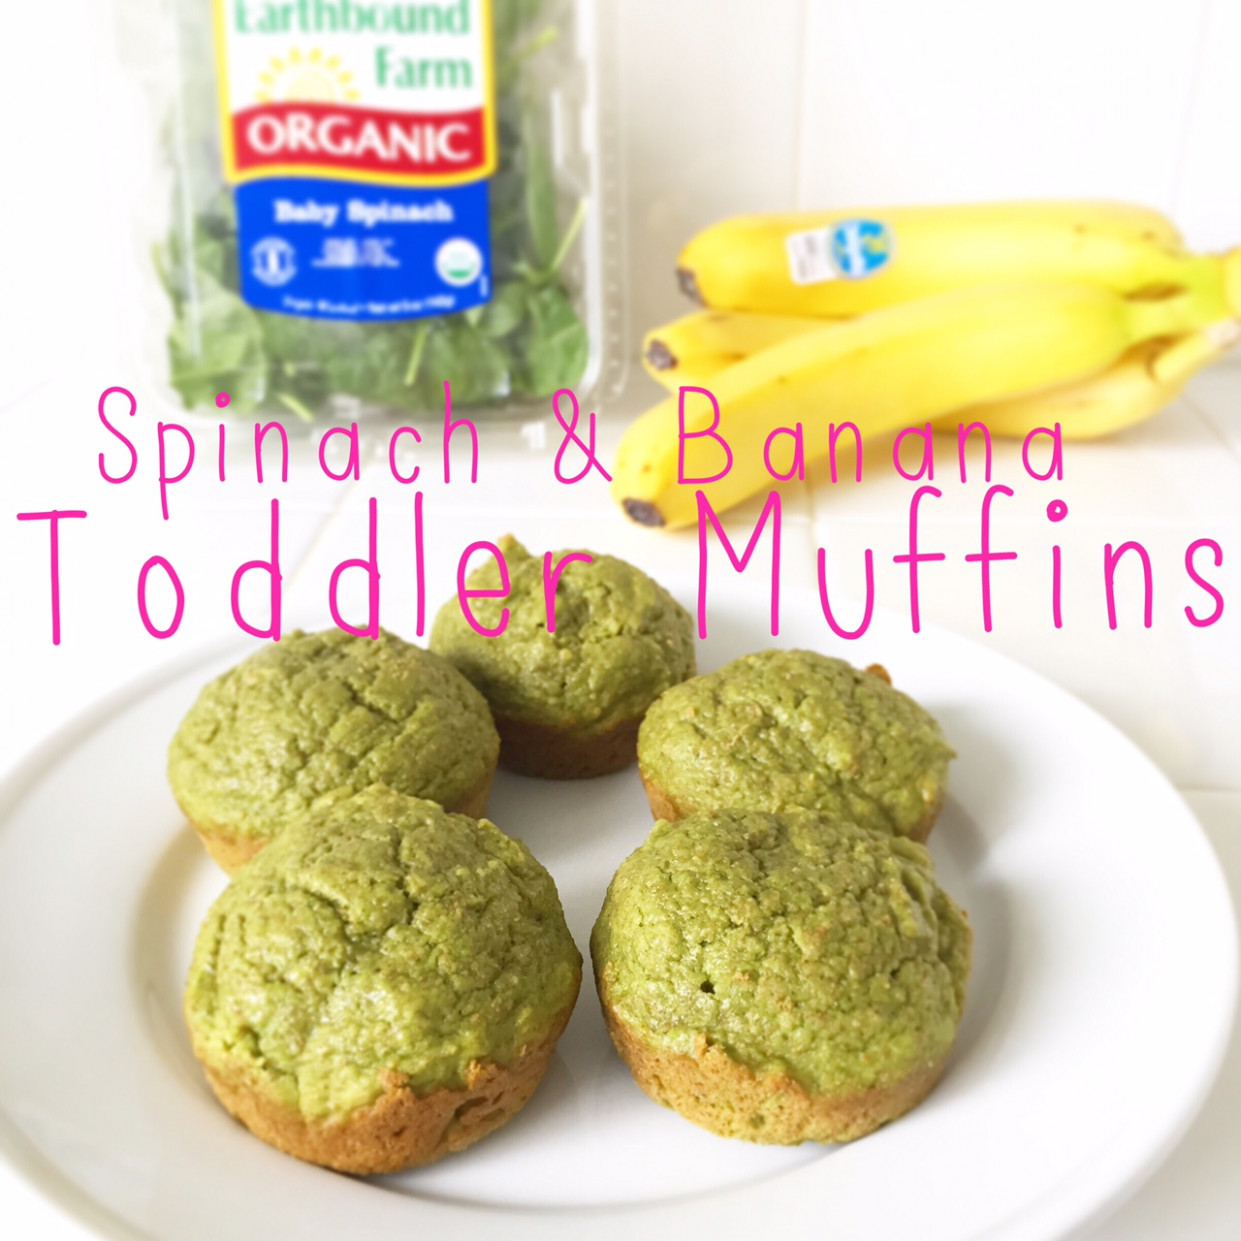 Spinach + Banana Healthy Breakfast Muffins Recipe for Toddlers - recipes muffins healthy